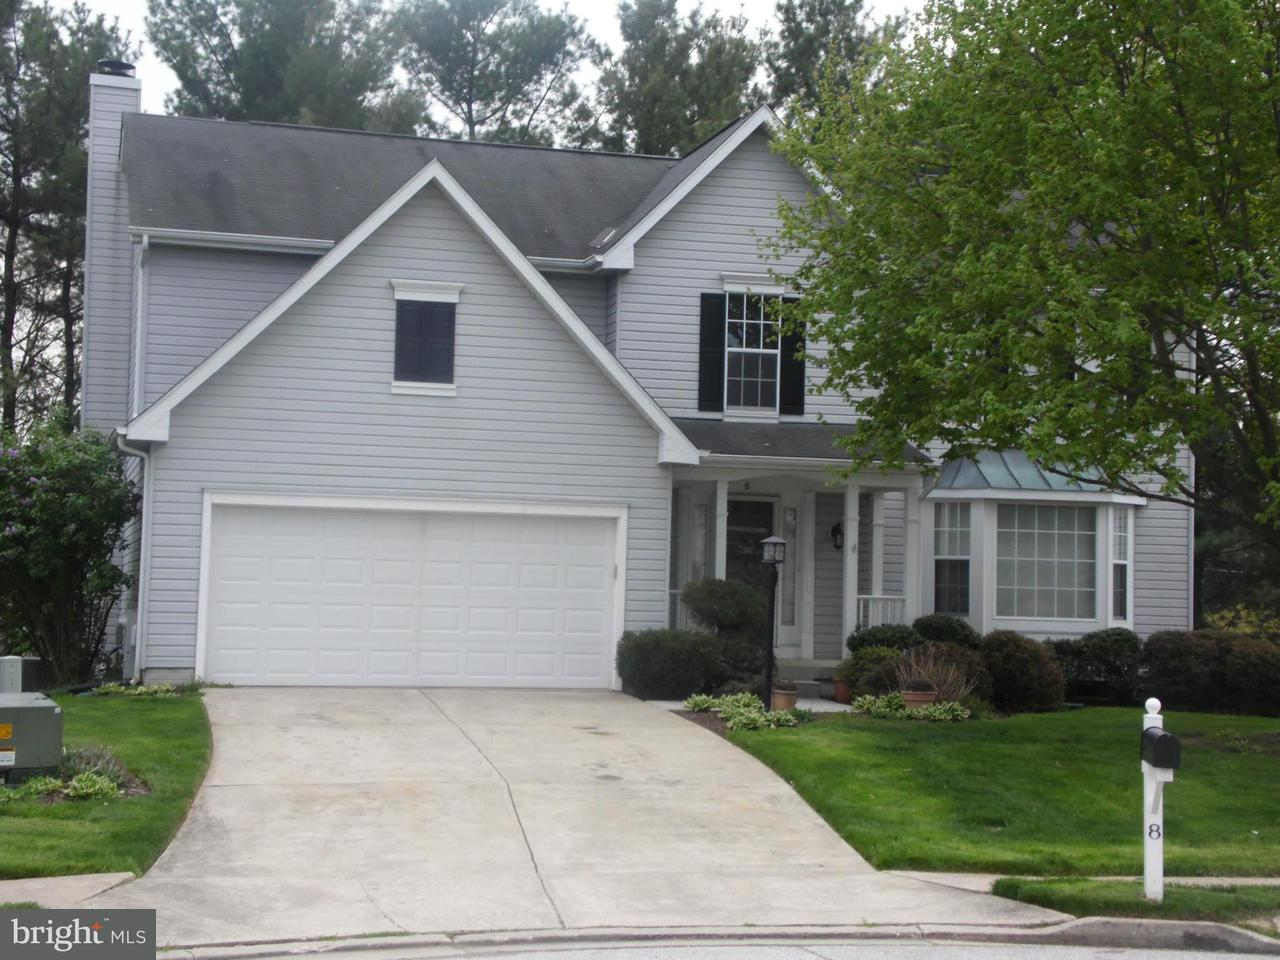 Other Residential for Rent at 8 Archery Ct Reisterstown, Maryland 21136 United States